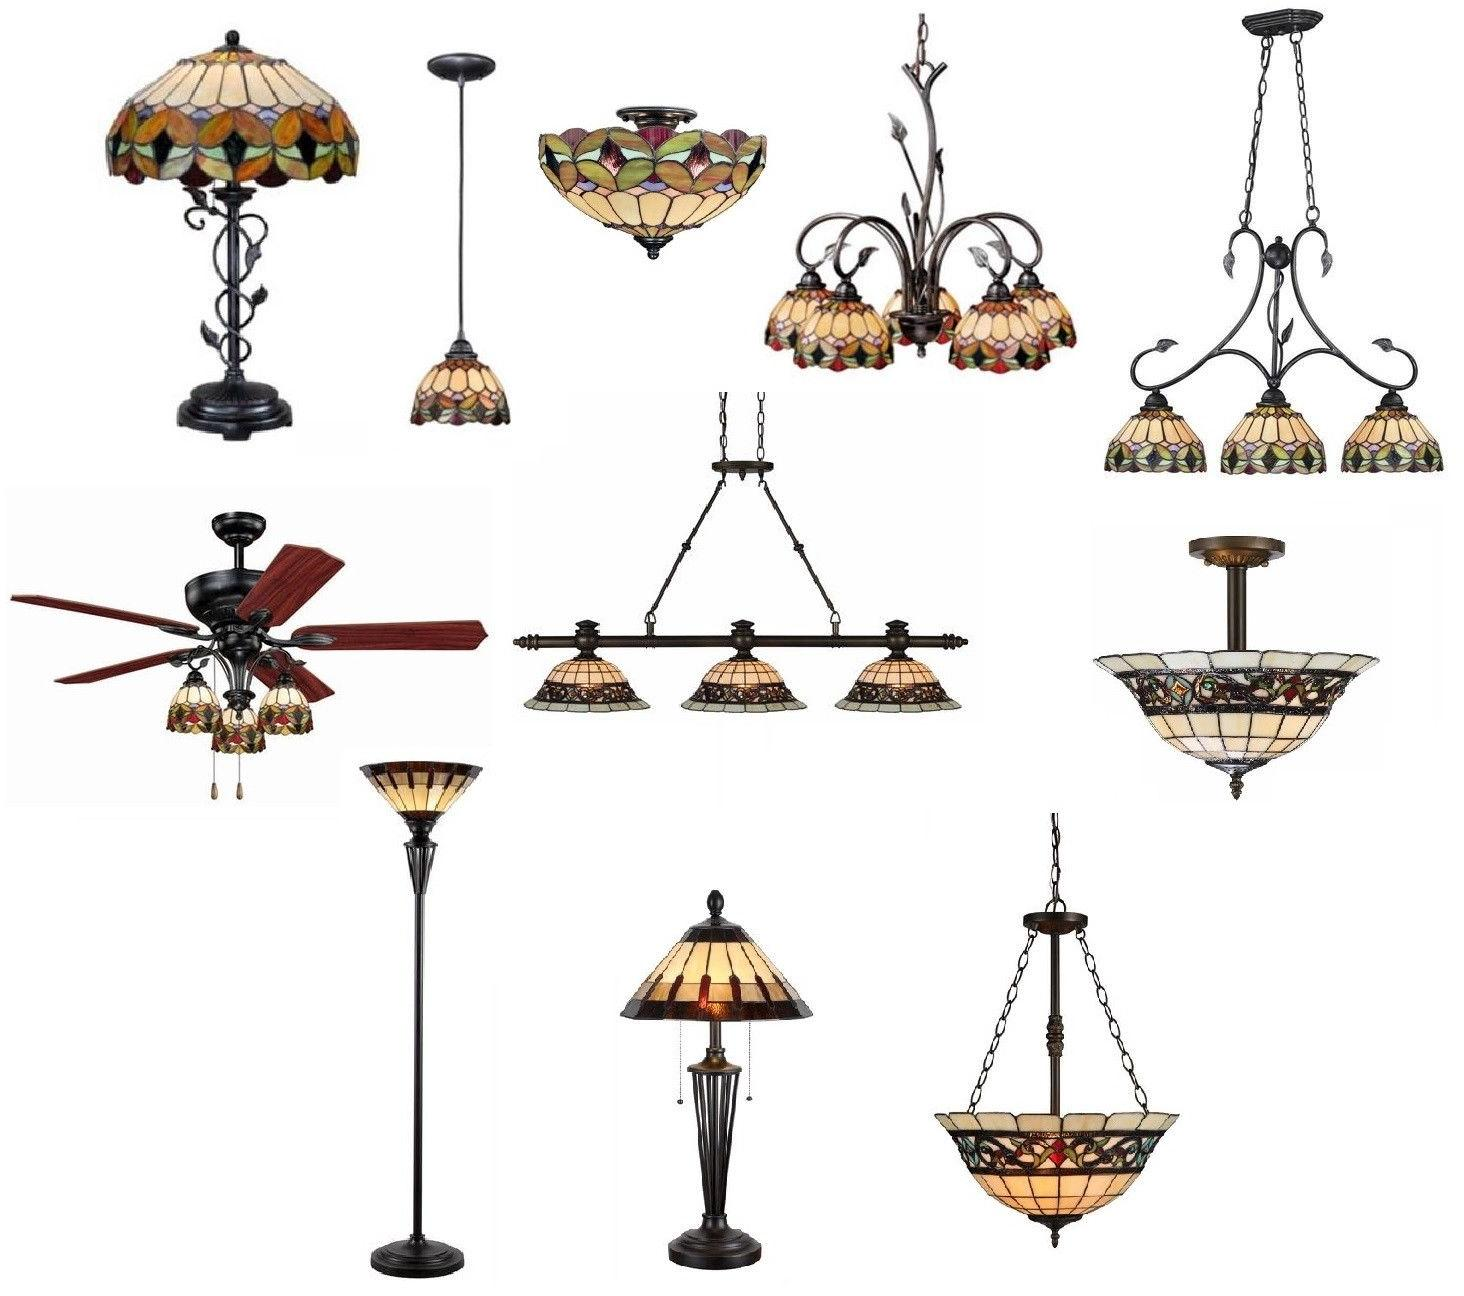 Tiffany Style Stained Glass Billiard Pendants, Ceiling Light